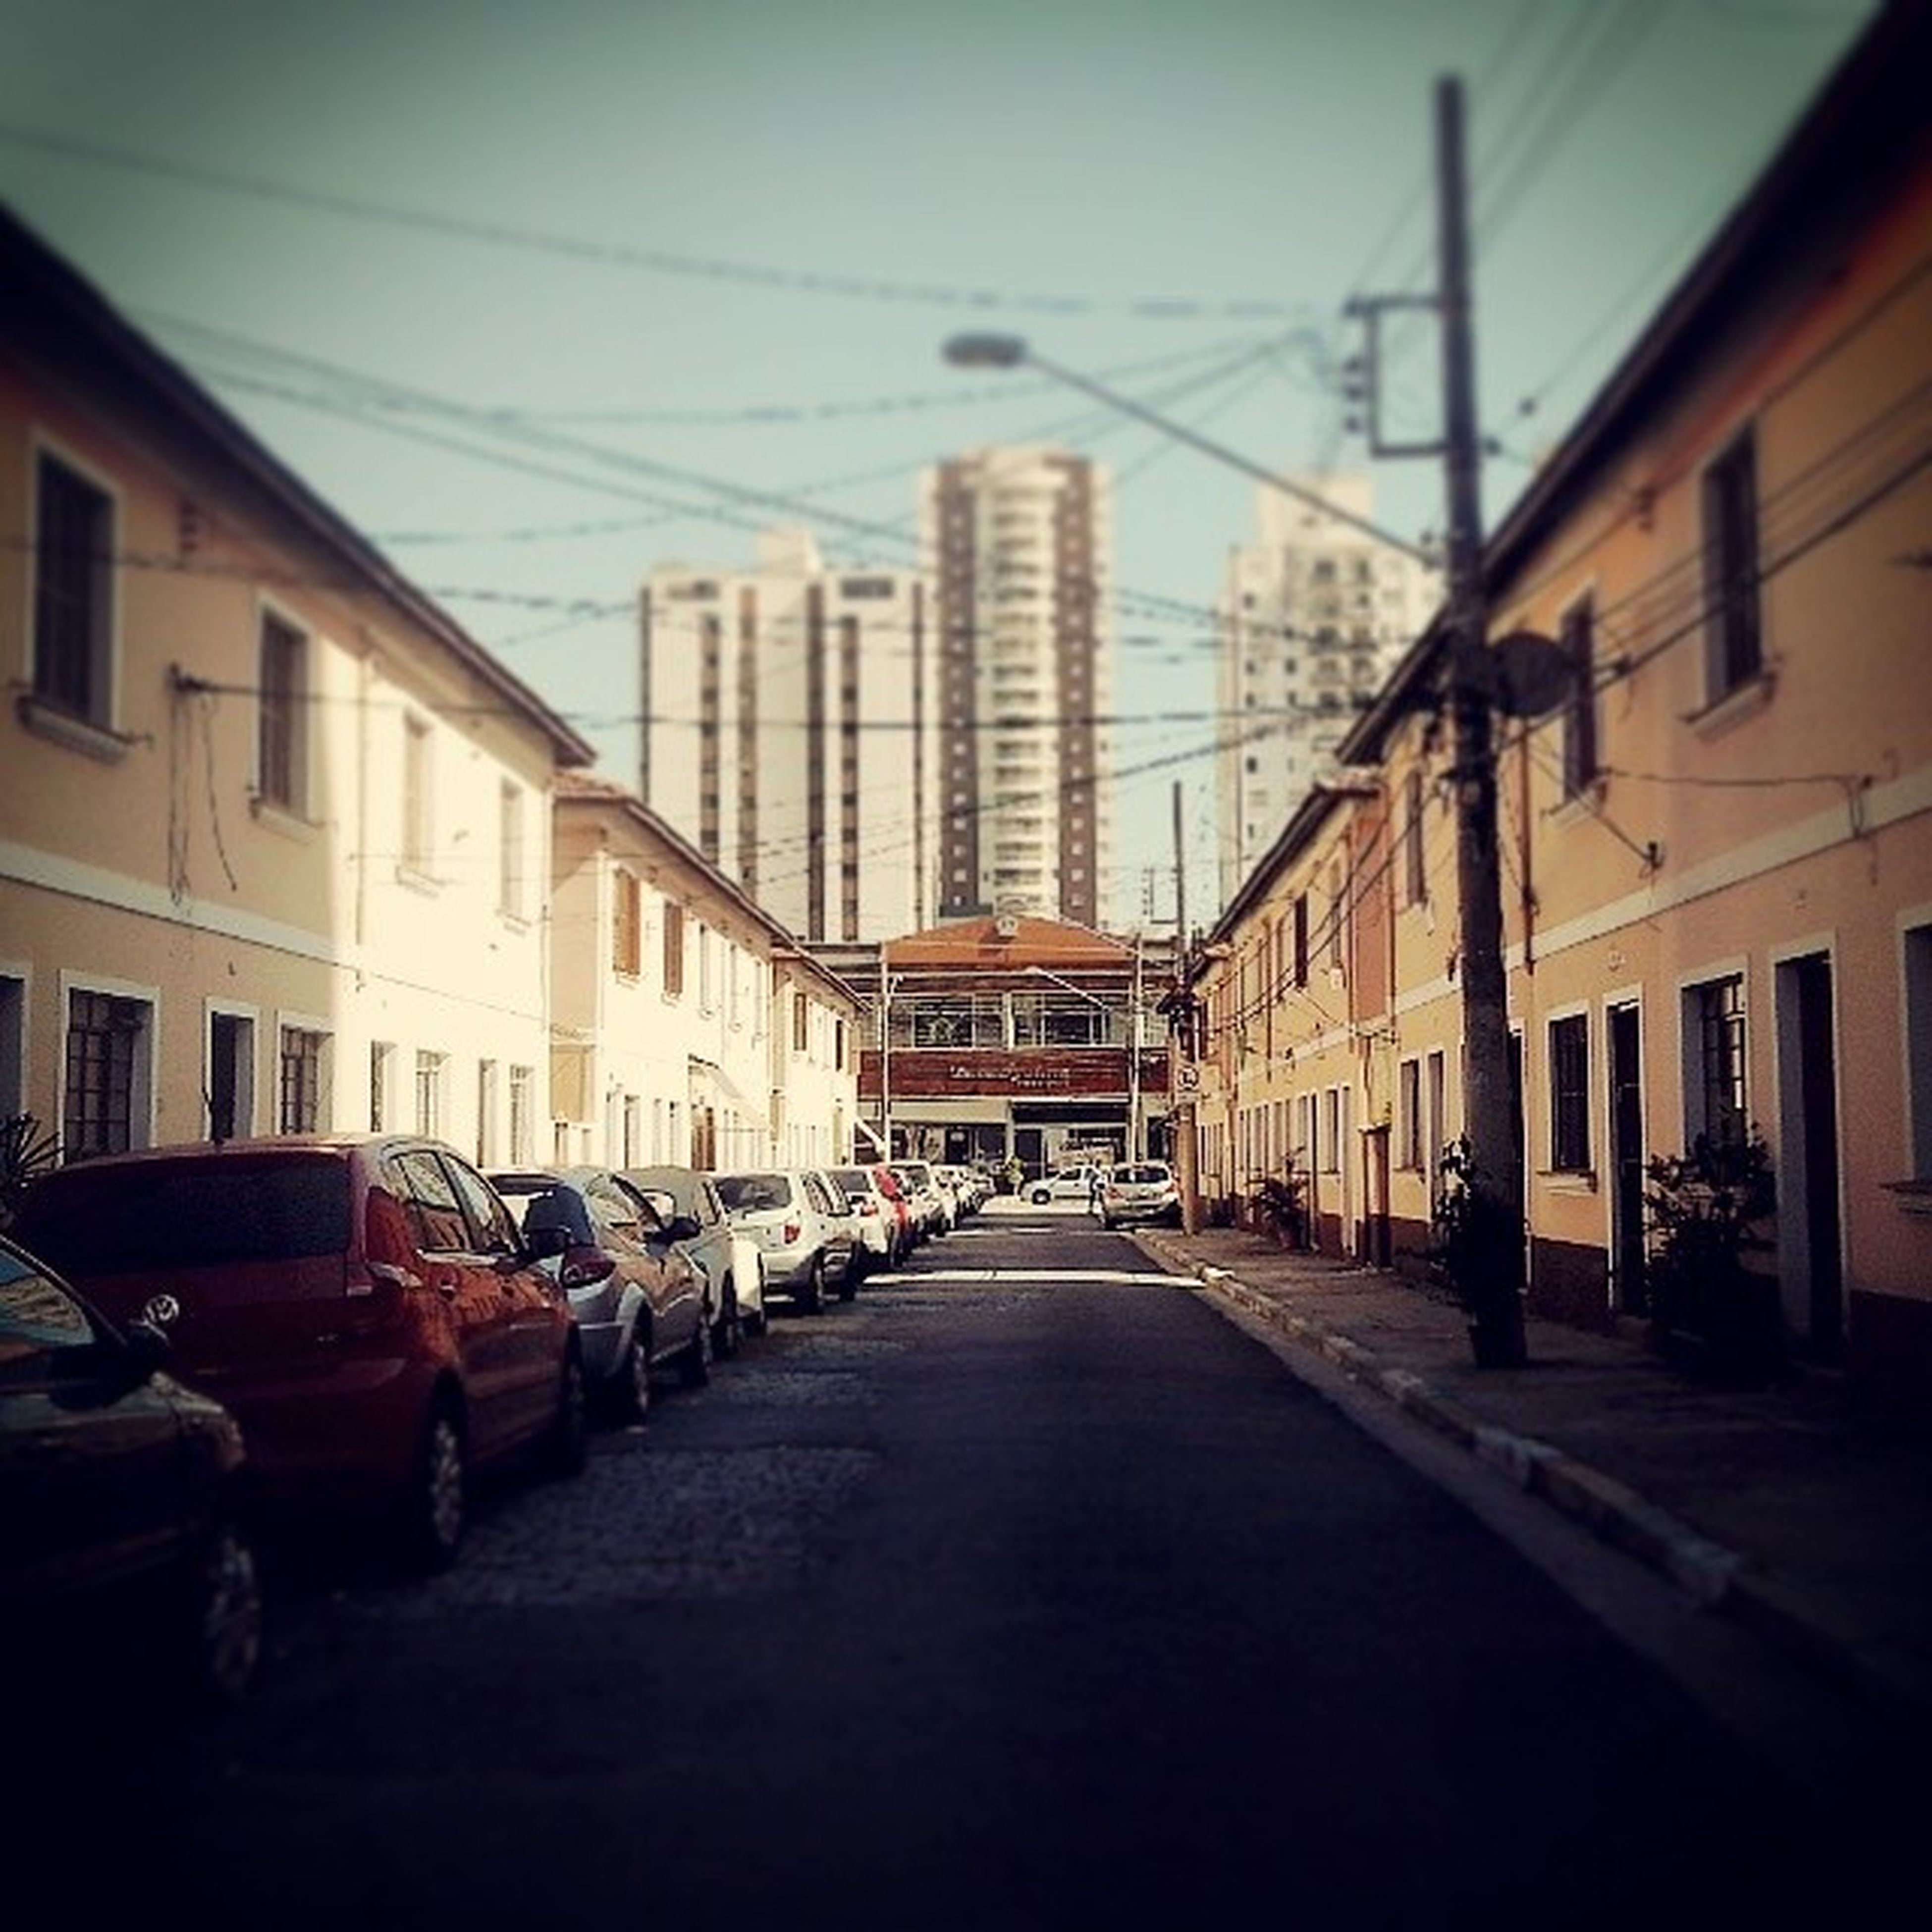 building exterior, architecture, built structure, transportation, city, street, car, the way forward, land vehicle, mode of transport, residential structure, building, diminishing perspective, residential building, road, sky, city life, city street, incidental people, in a row